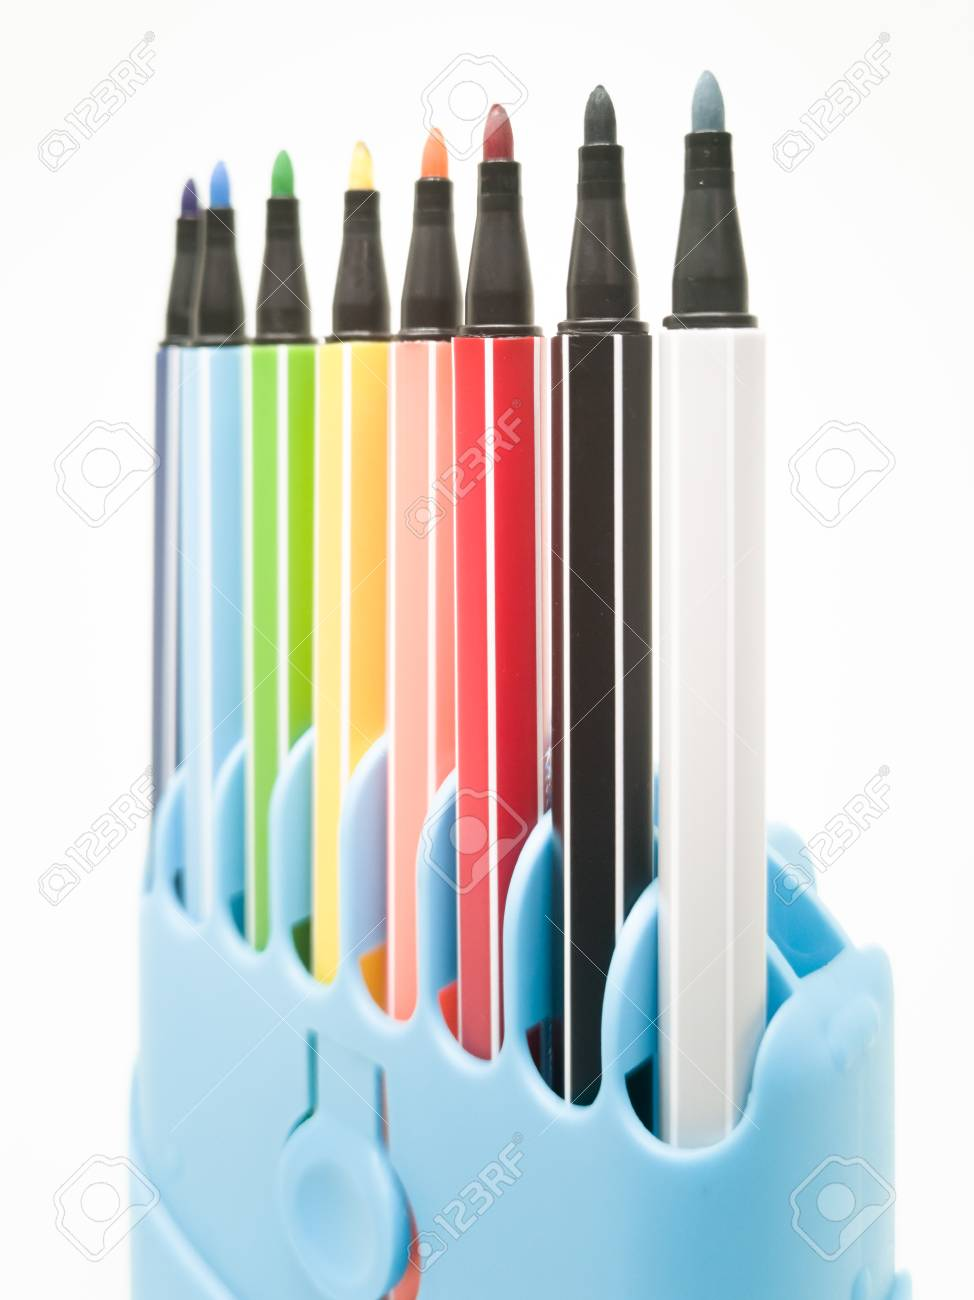 Set of colorful marker paint pen isolated against white background - 106223054